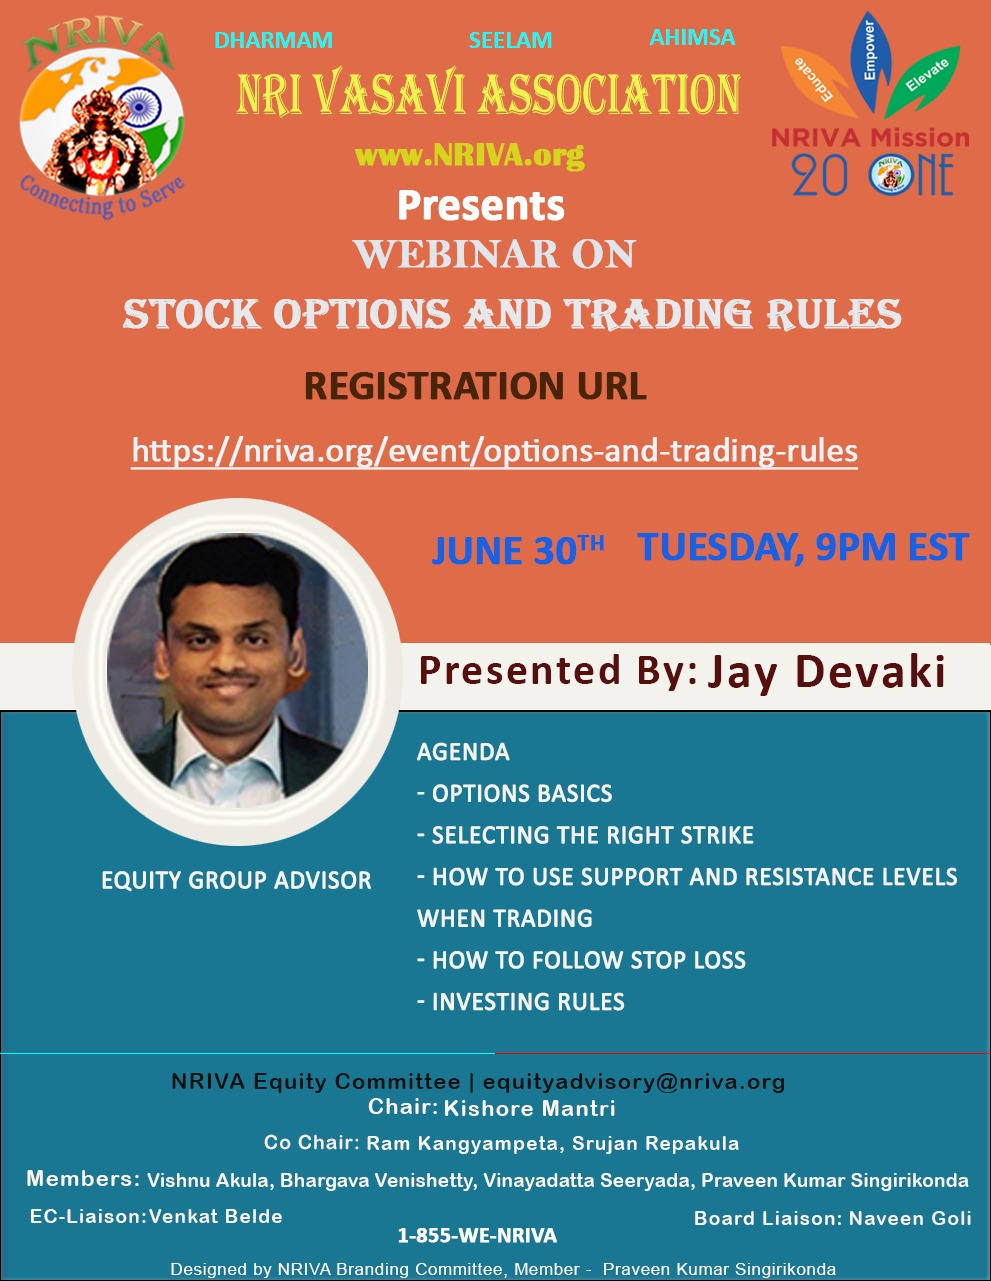 Stock Options and Trading Rules